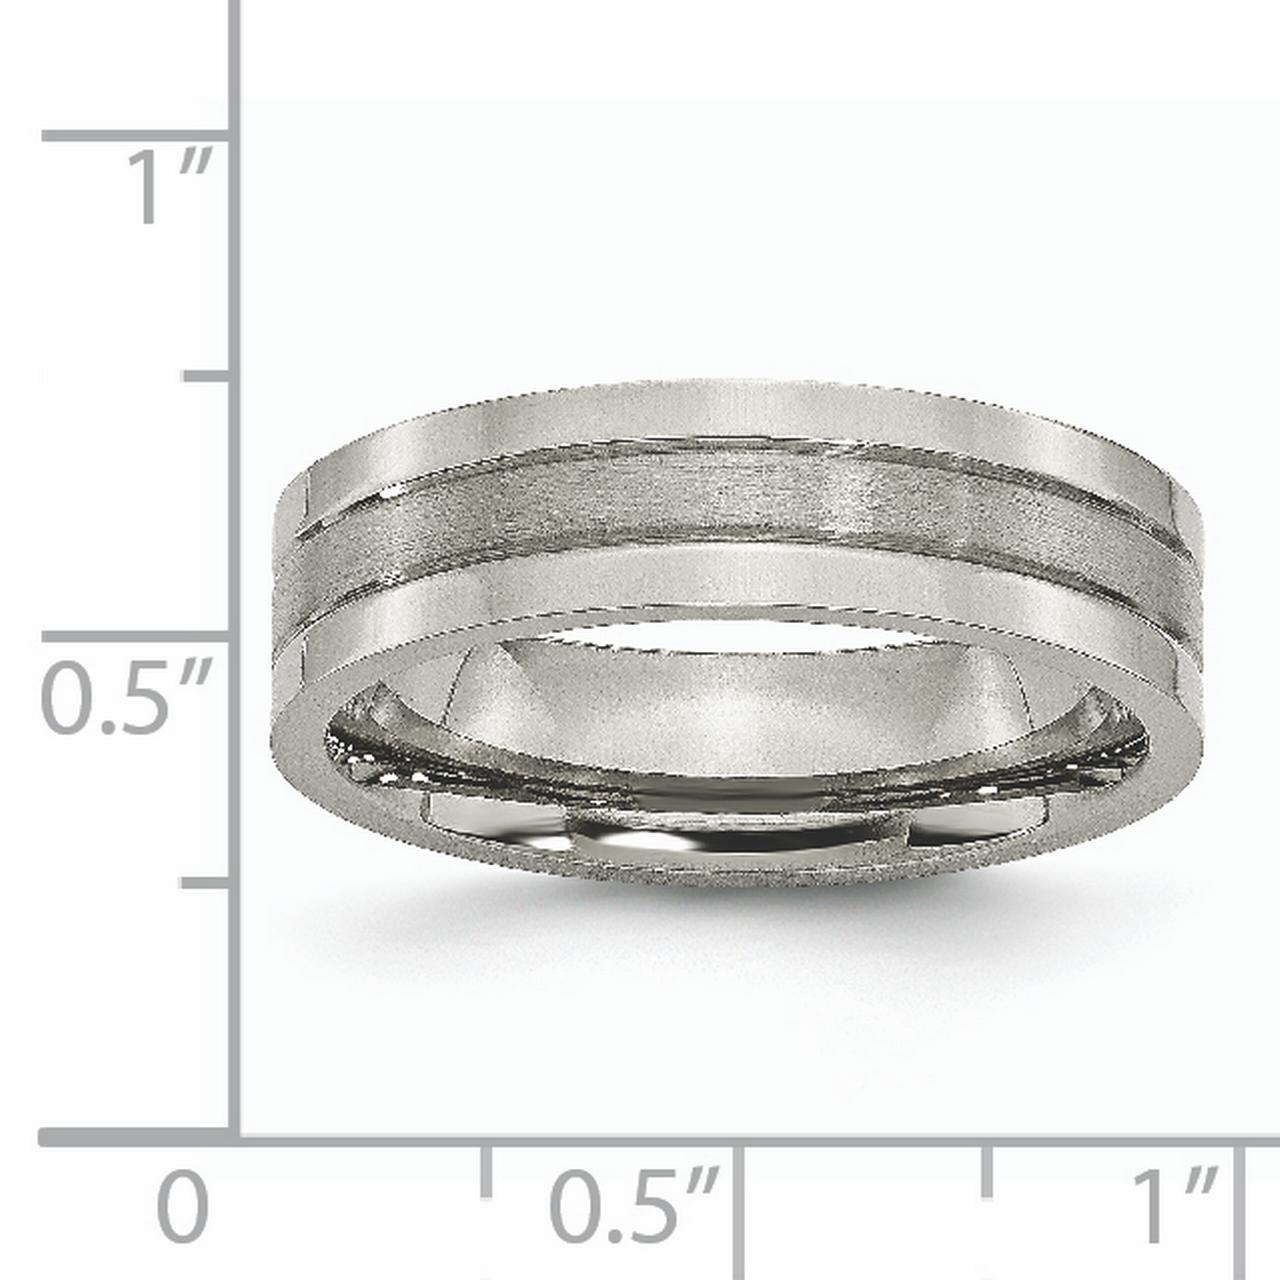 Titanium Grooved 6mm Brushed Wedding Ring Band Size 11.50 Fashion Jewelry Gifts For Women For Her - image 1 de 6